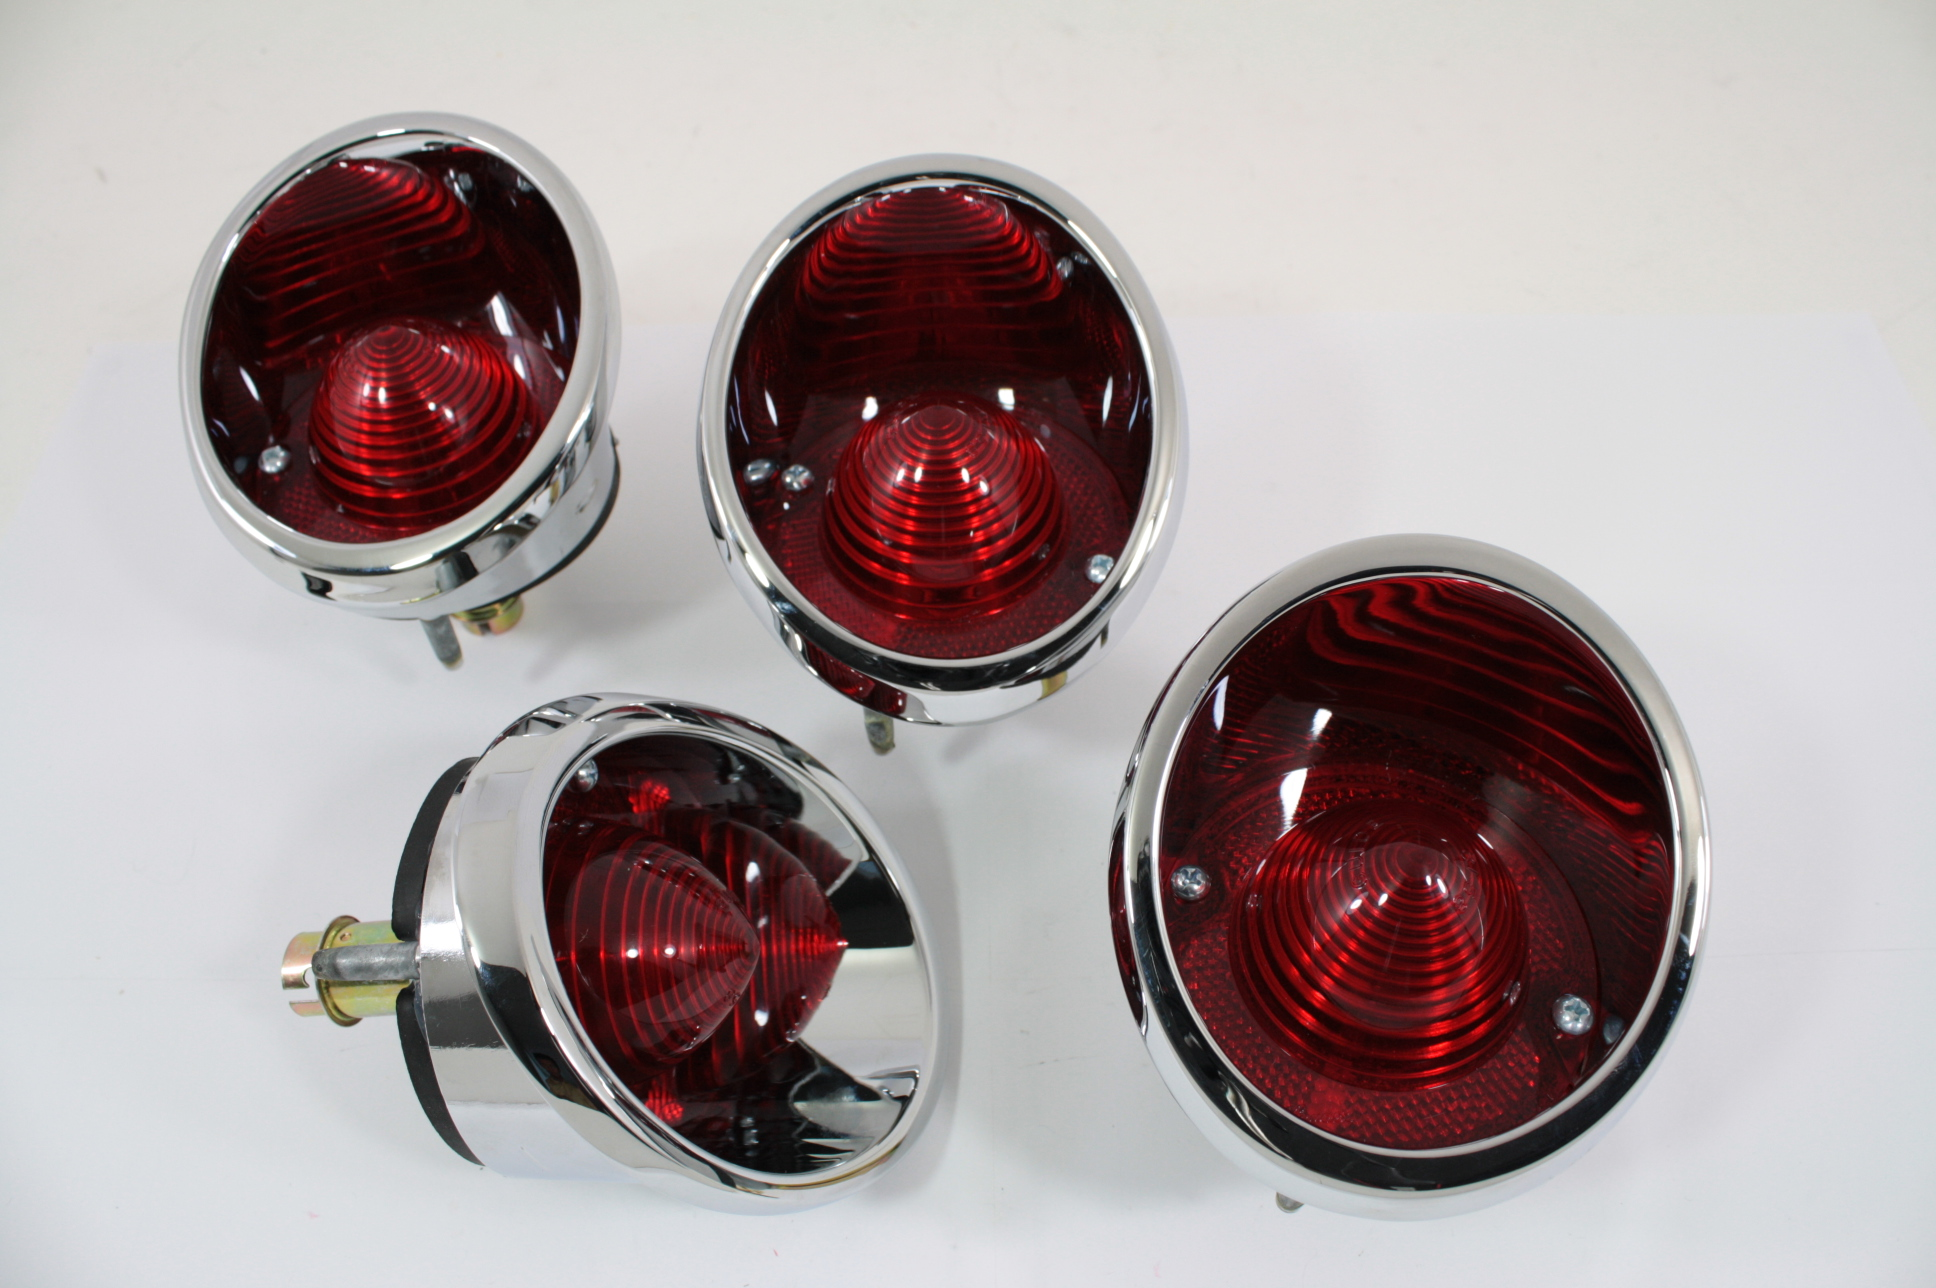 63 64 65 66 67 Corvette Tail Light Assembly Set (4) New